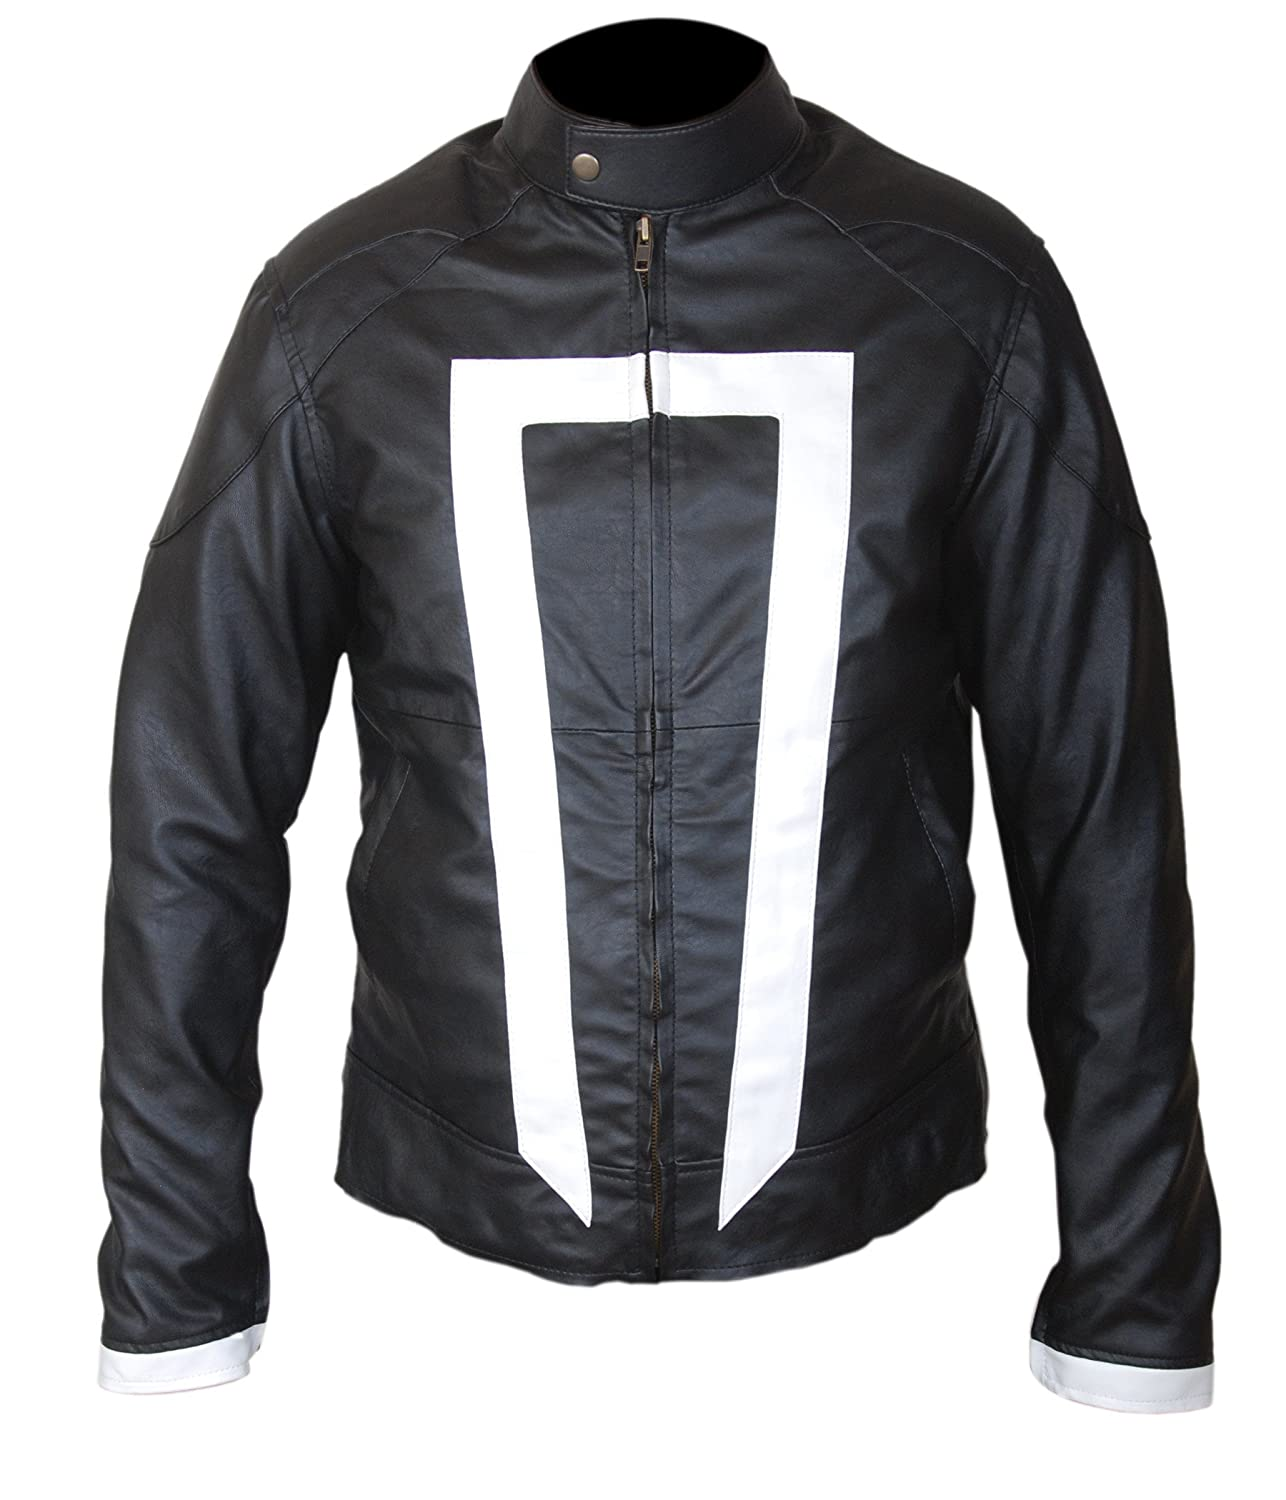 F&H Men's Gabriel Luna Ghost Rider Jacket B071JMMDQP Black XX-Large